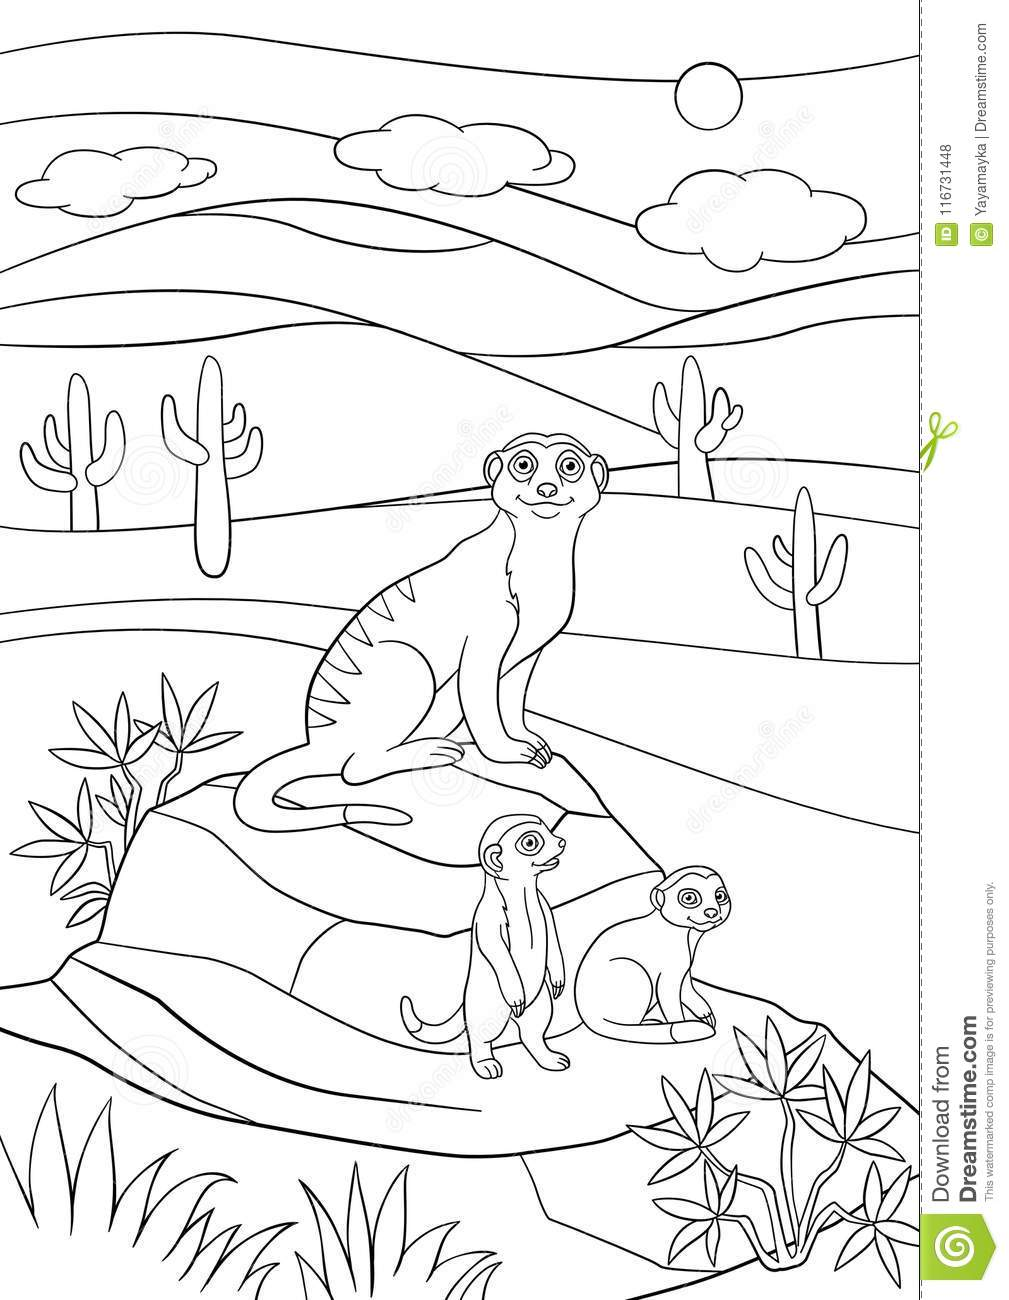 Cute Baby Sleeping coloring page | Free Printable Coloring Pages | 1300x1009